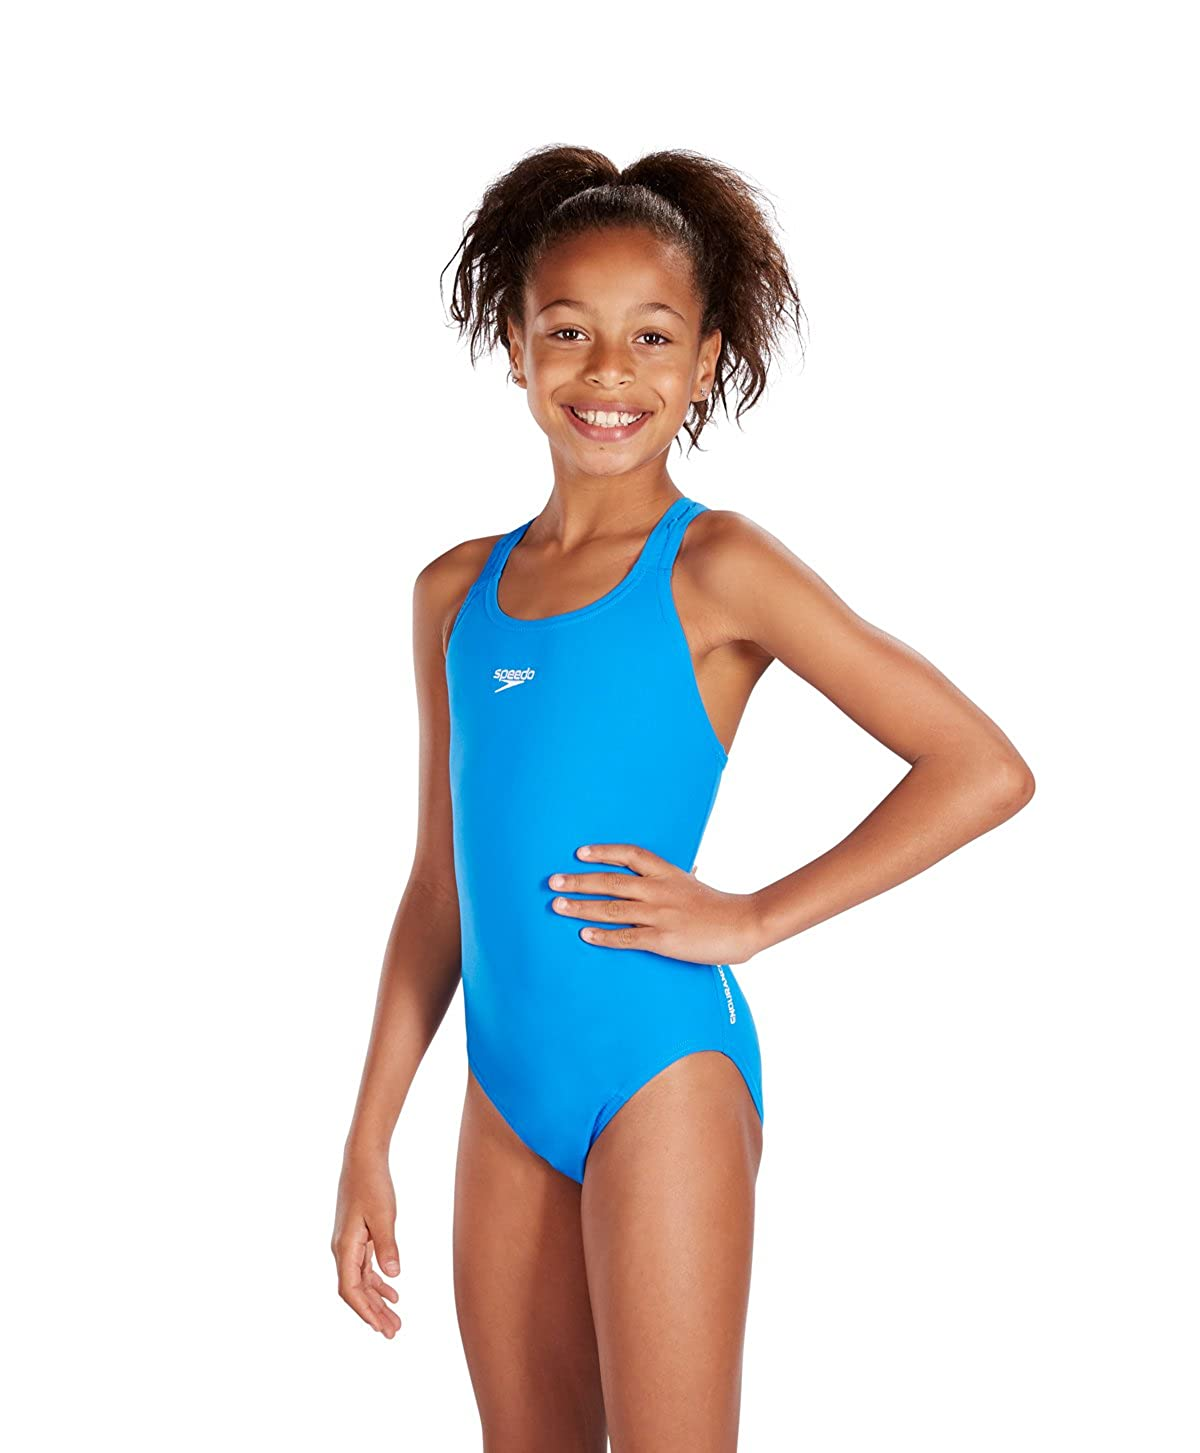 4399f27c81 Essential Endurance Medalist Swimsuit - Blue: Amazon.ca: Sports & Outdoors